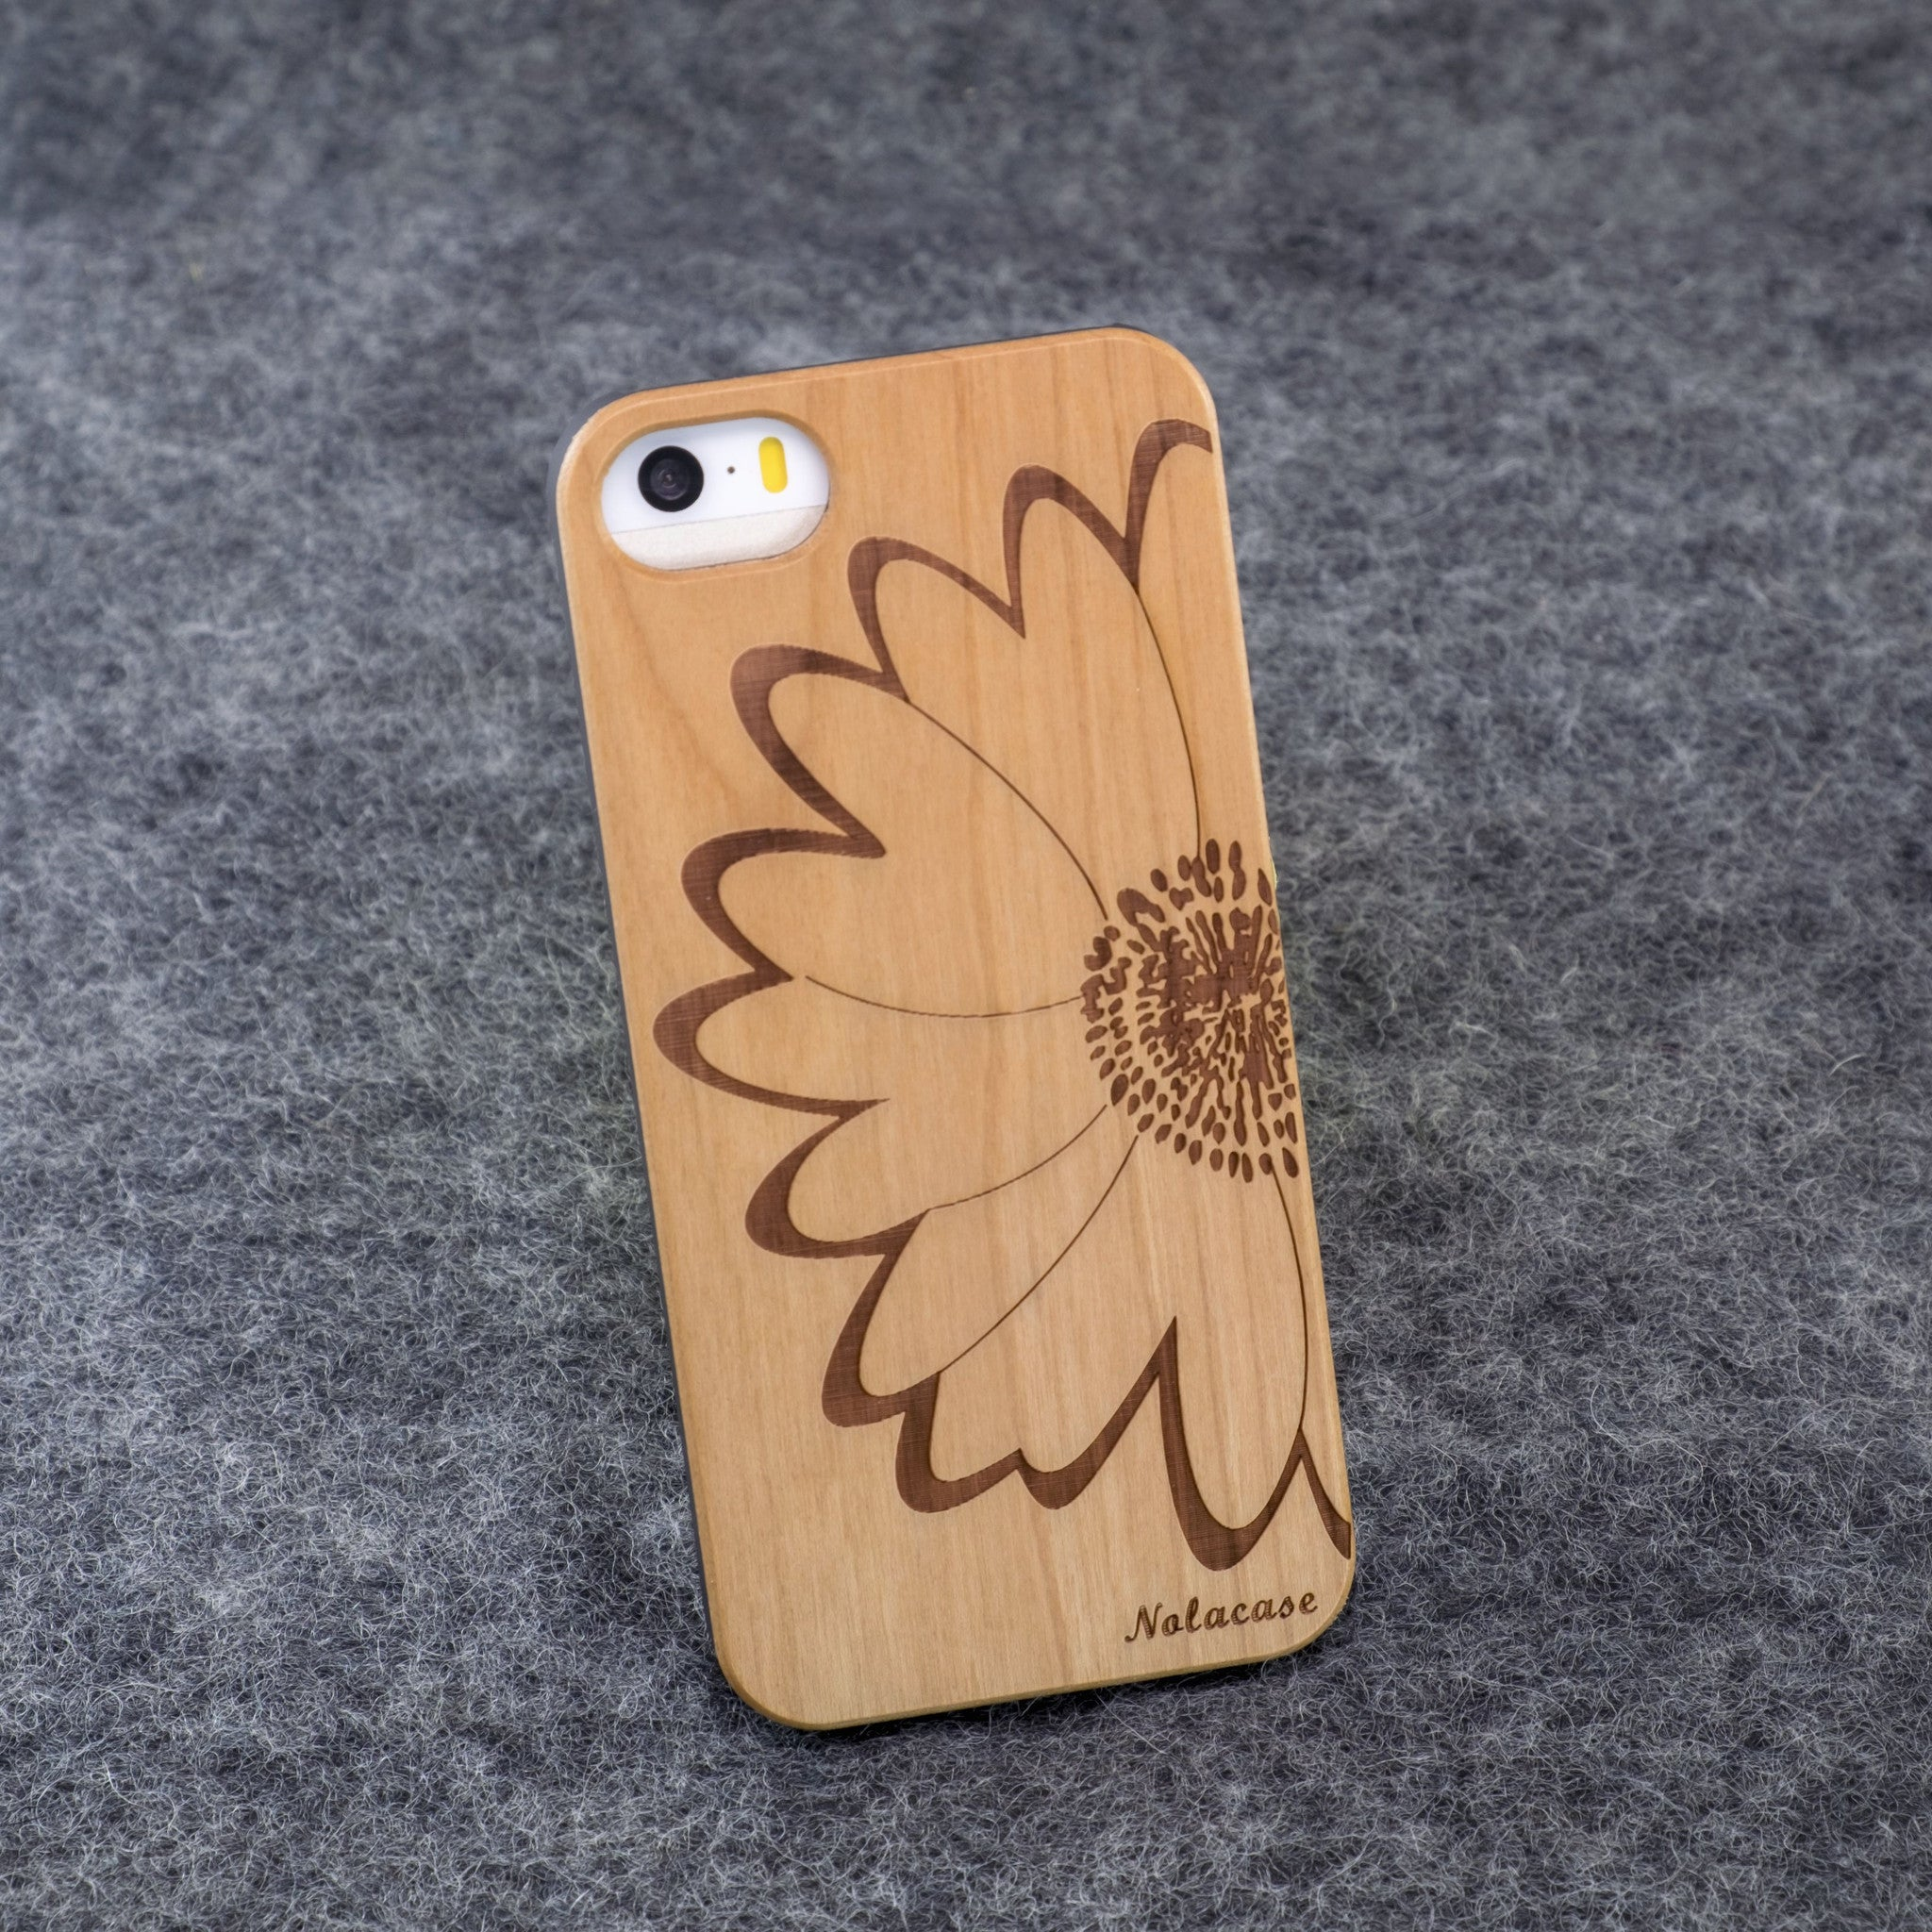 iPhone 5 / 5S Big Flower Slim Wood Case - NOLACASE